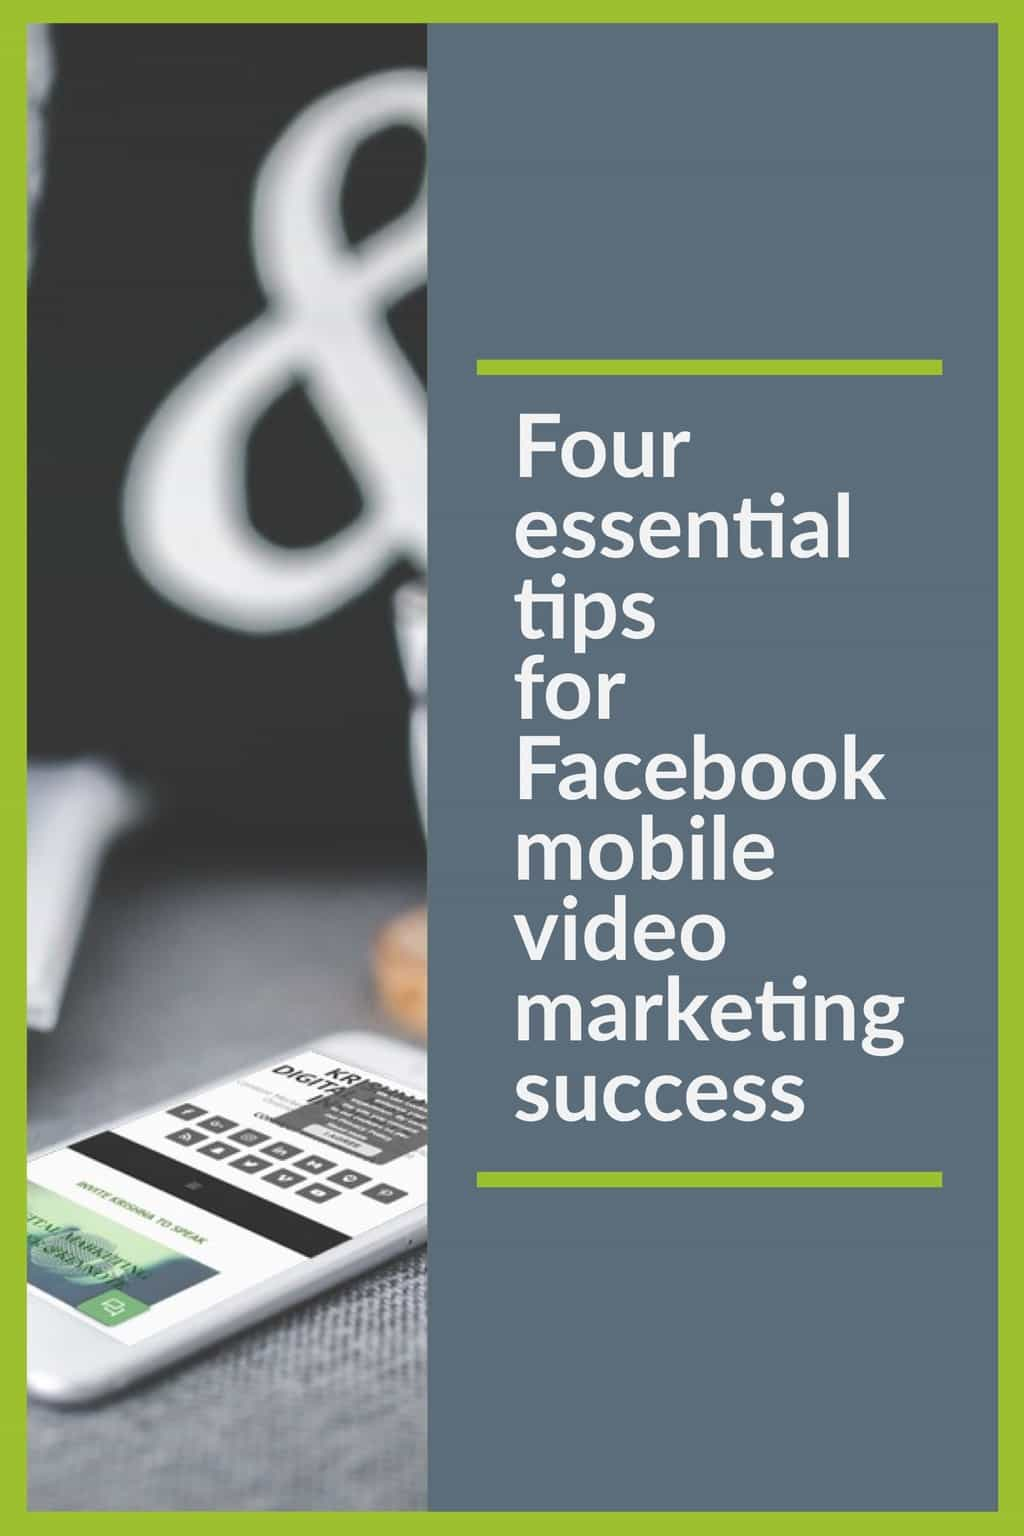 Four essential tips for Facebook mobile video marketing success that you can implement today